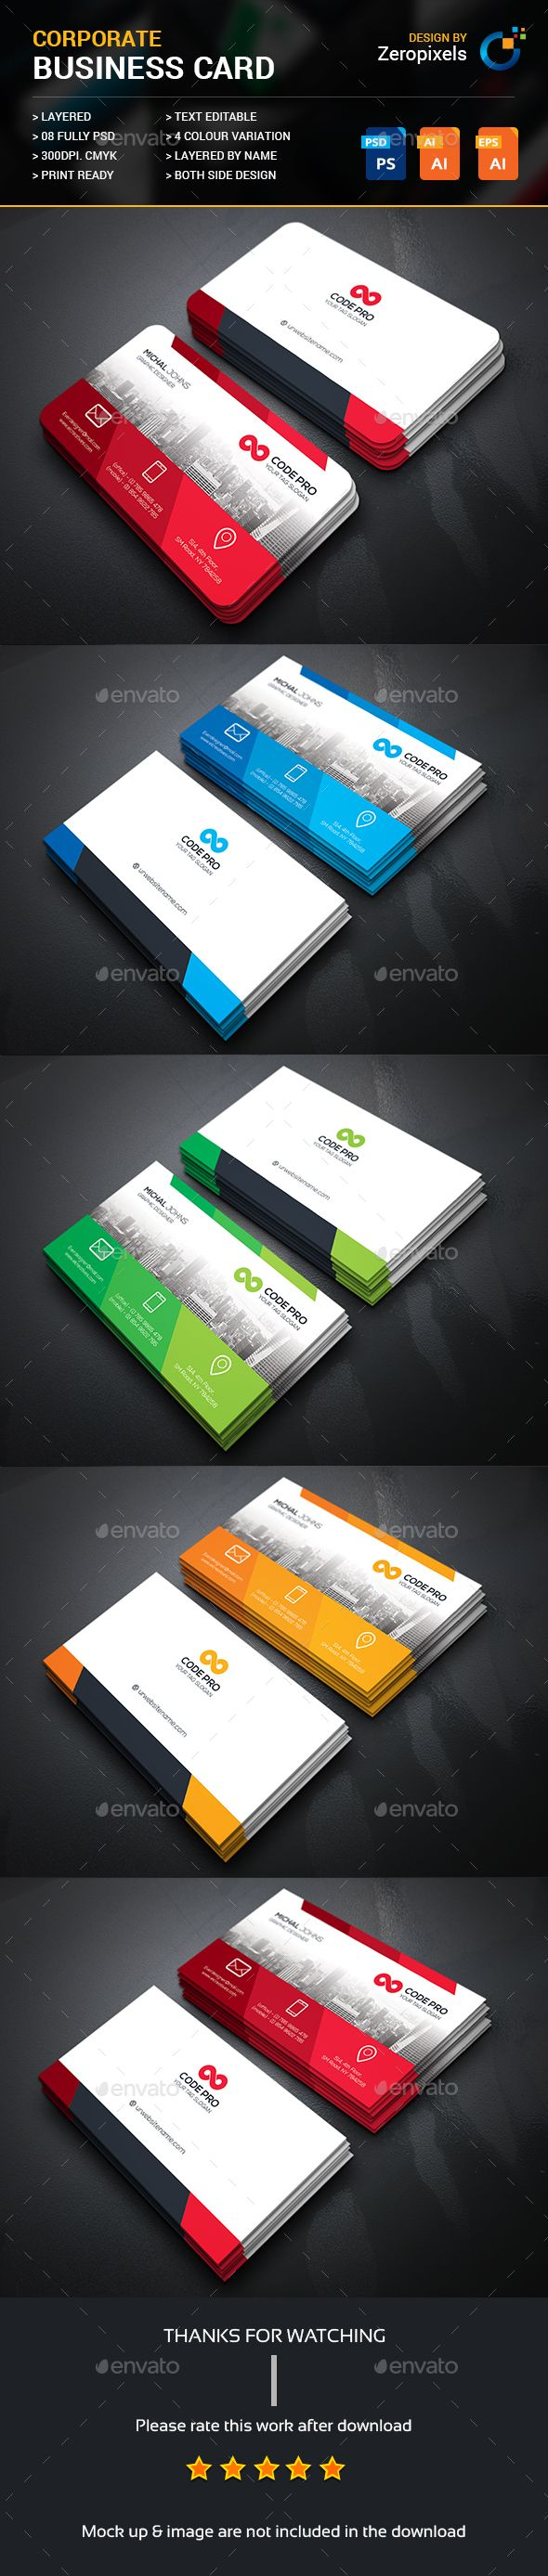 Creative Business Card - #Business Cards Print Templates Download here: https://graphicriver.net/item/creative-business-card/17362094?ref=classicdesignp